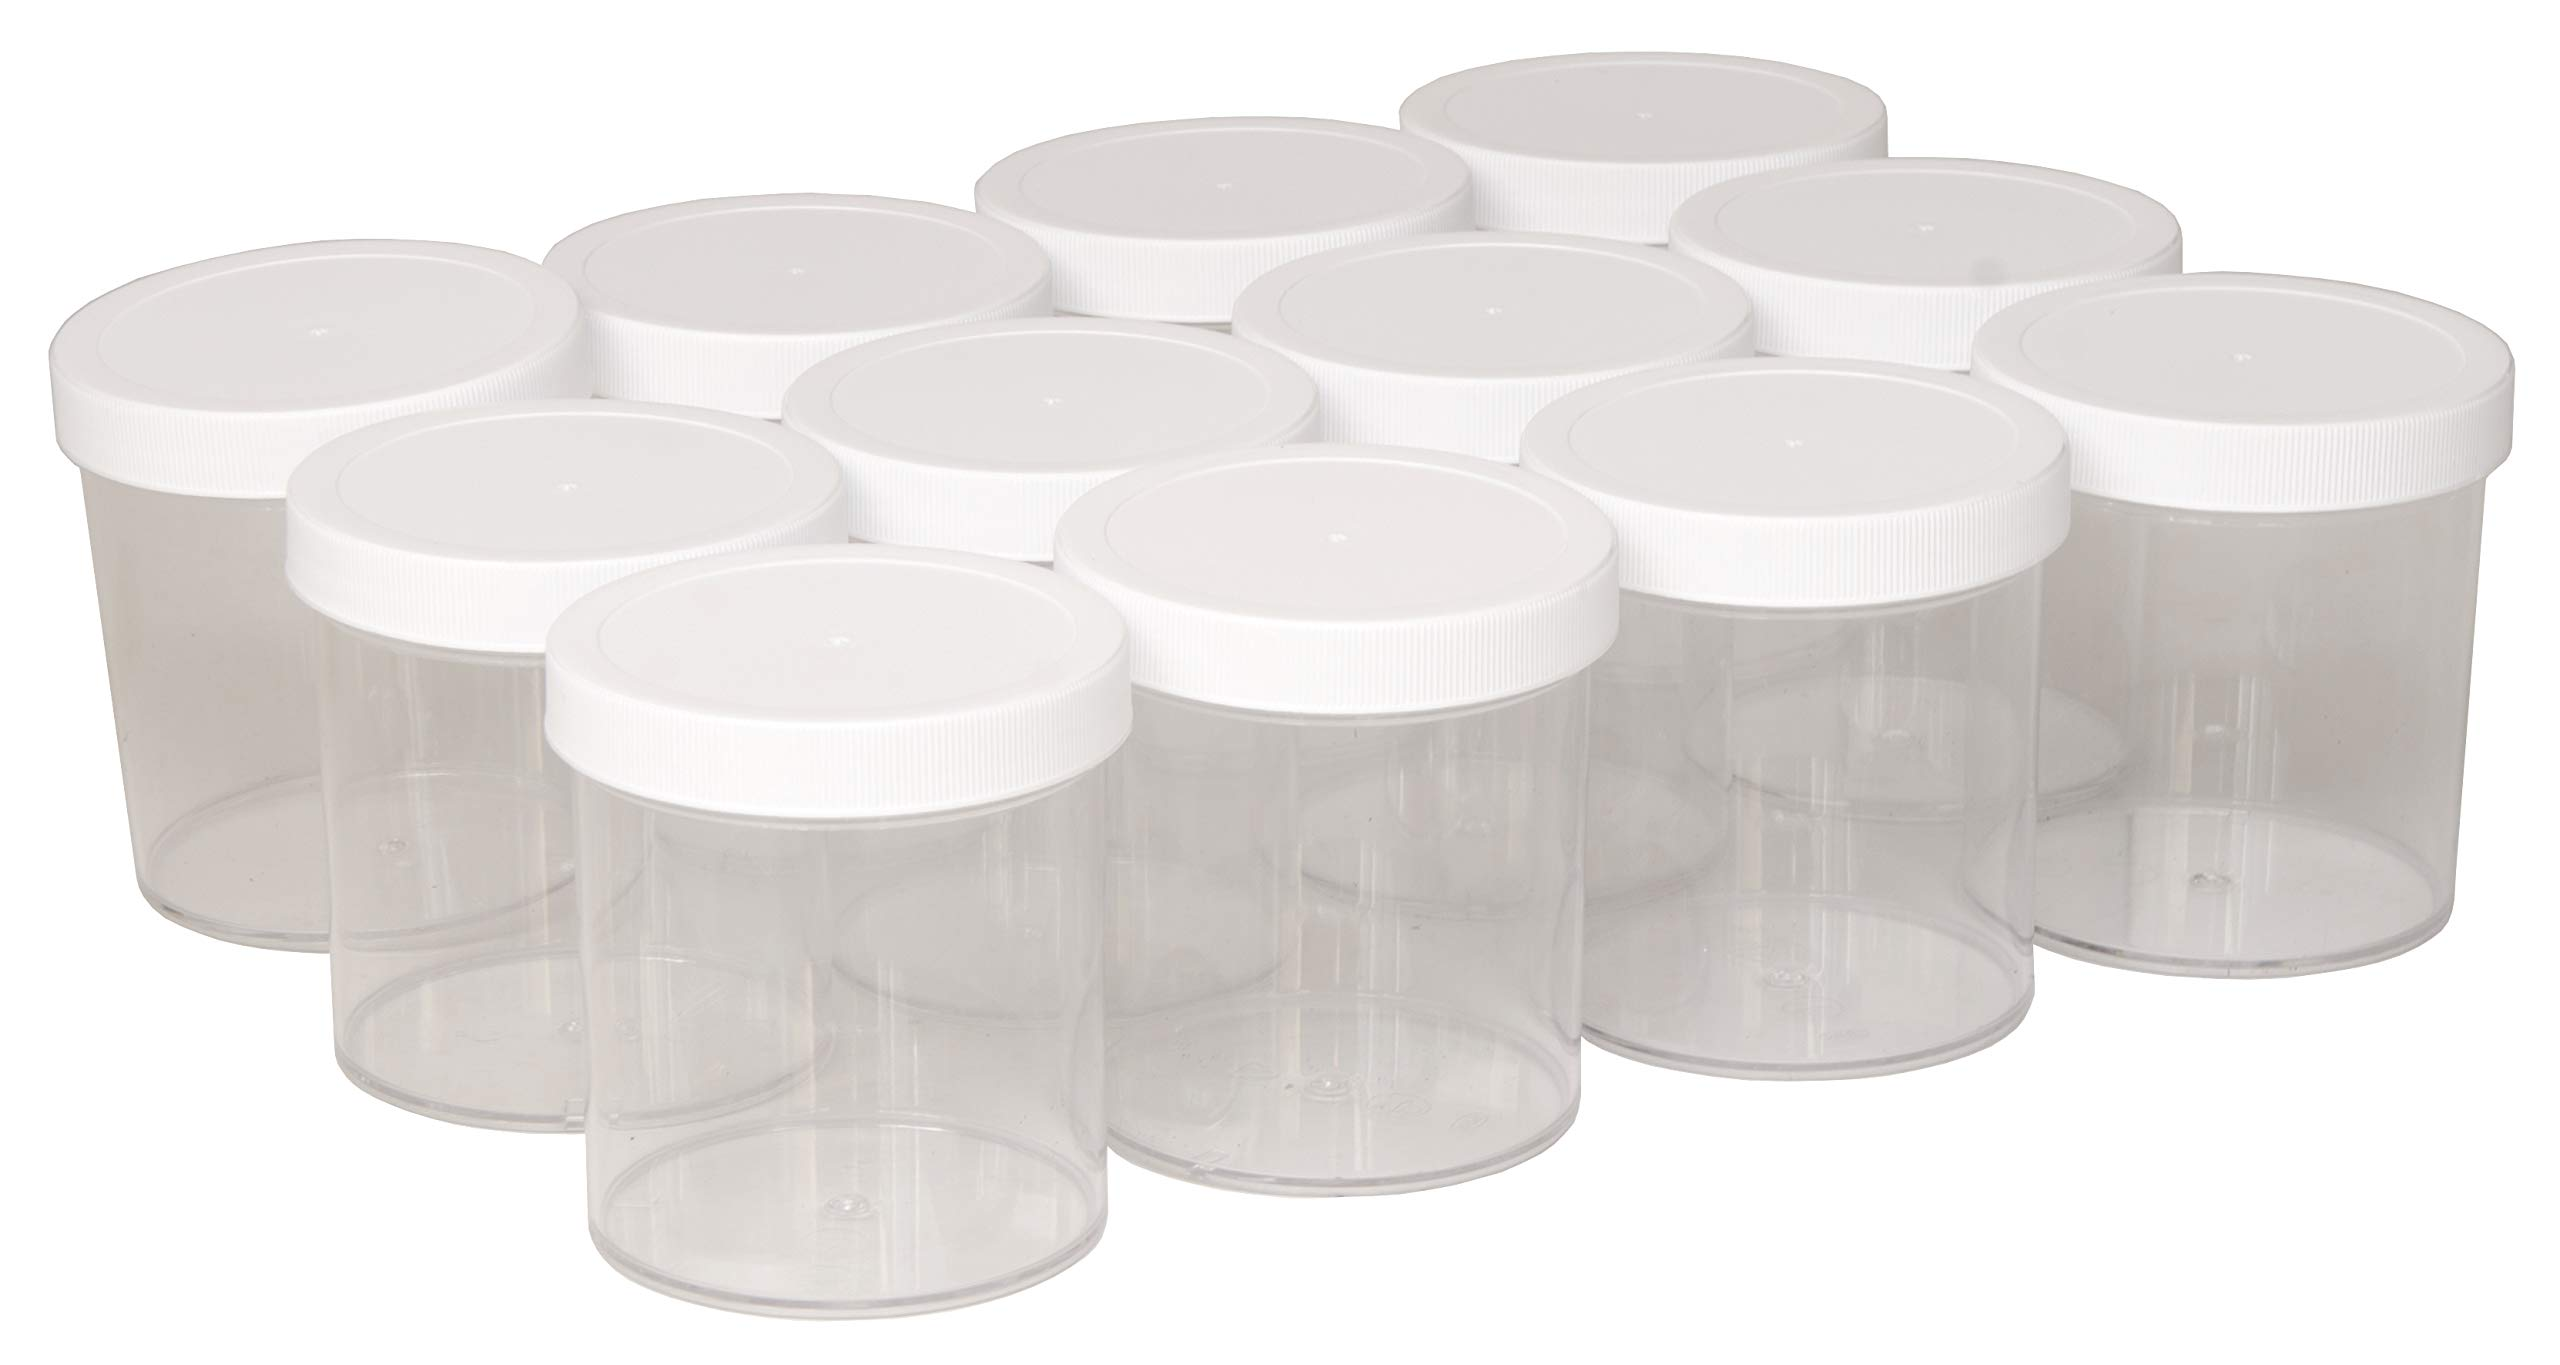 North Mountain Supply 16 Ounce Polystyrene Clear Plastic Straight Sided Spice/Storage/Ingredients Jars - with White Plastic Lids - Case of 12 by North Mountain Supply